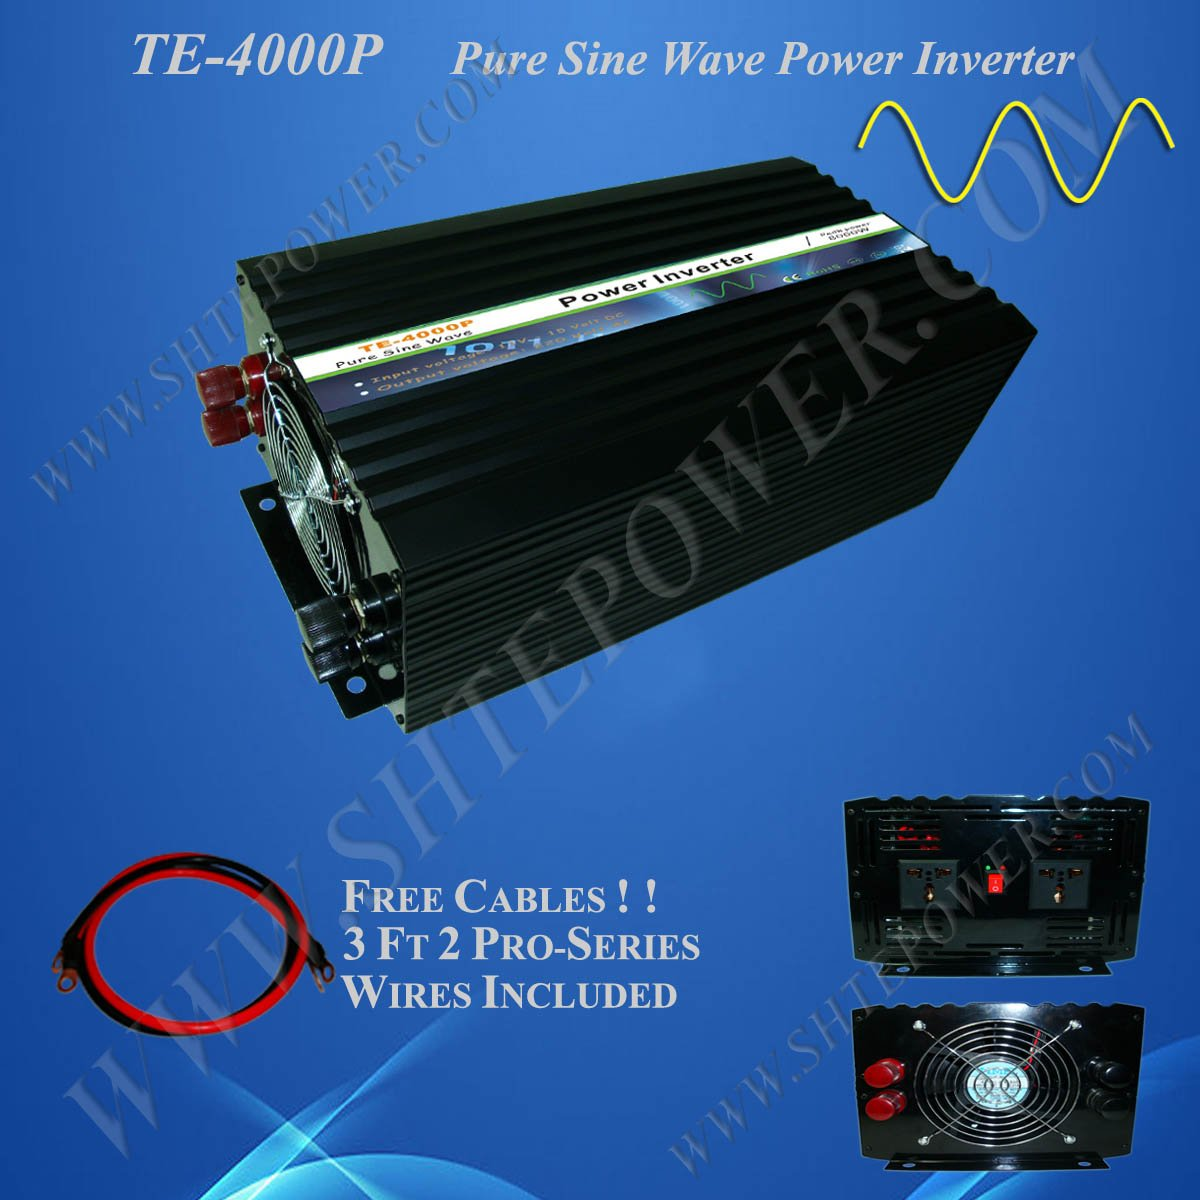 inverter 24v 220v 50hz 4000w(pure sine wave inverter)inverter 24v 220v 50hz 4000w(pure sine wave inverter)